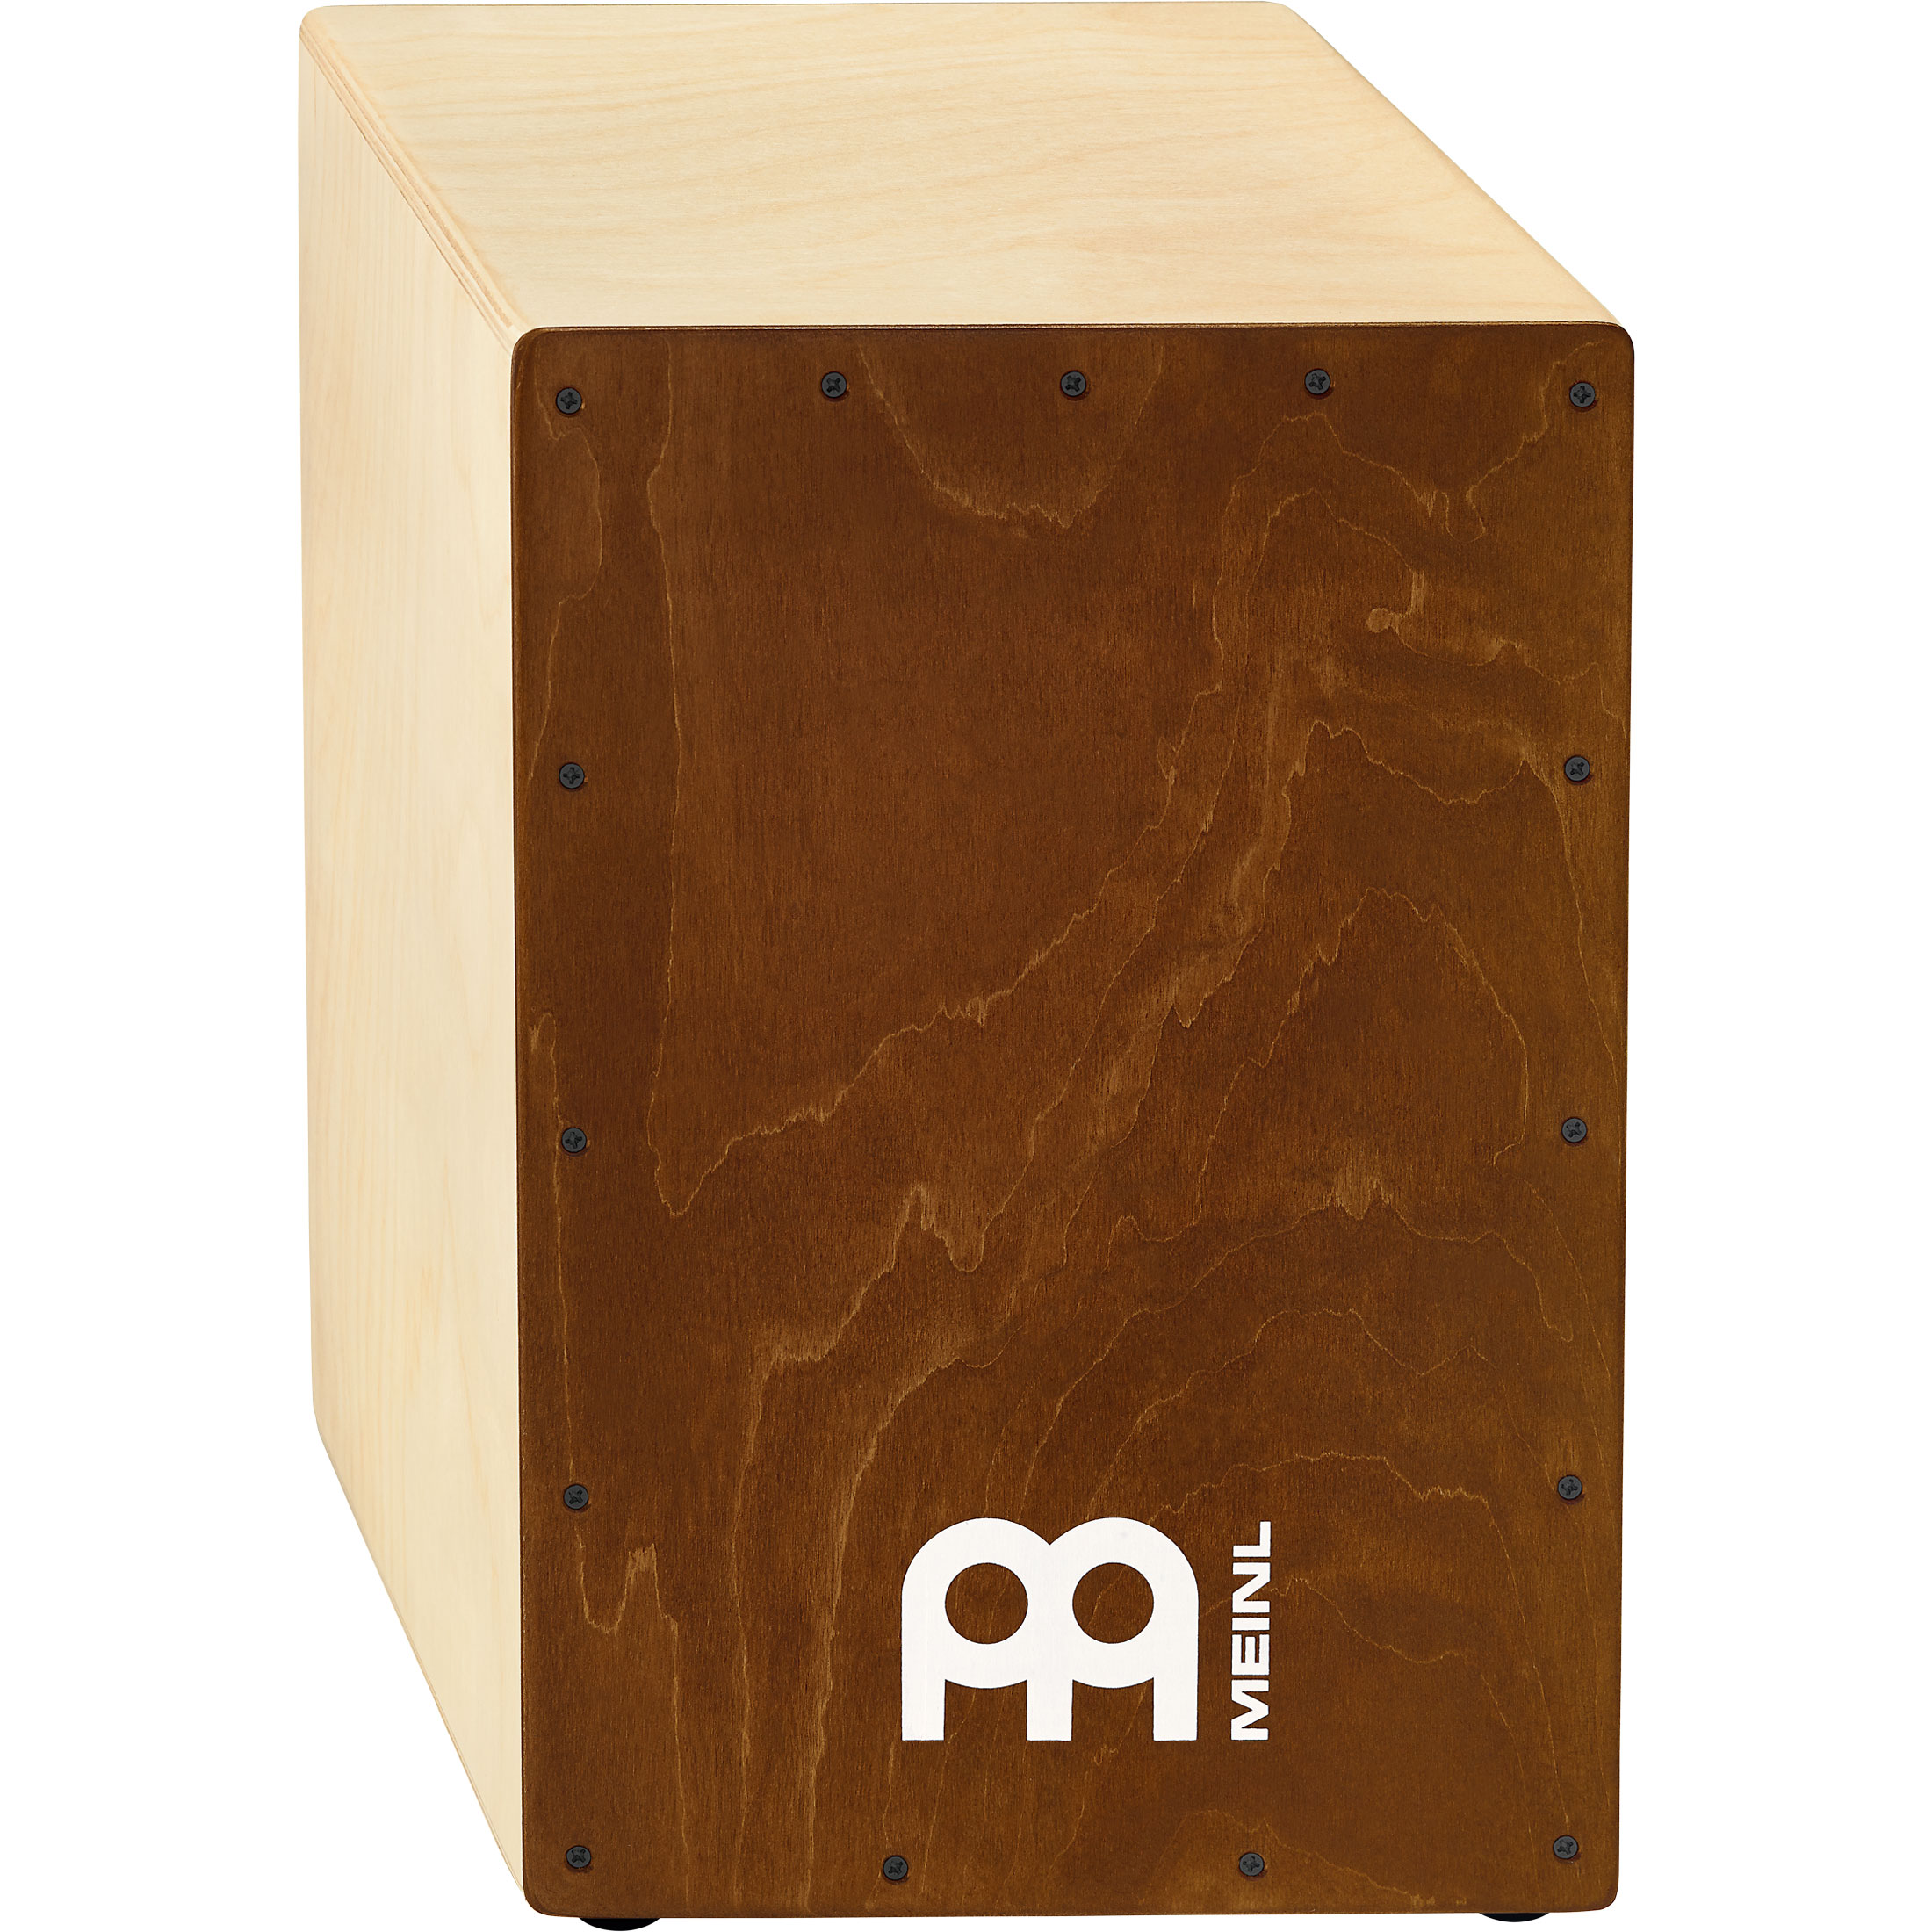 Meinl Headliner Snare Cajon in Natural with Almond Birch Frontplate